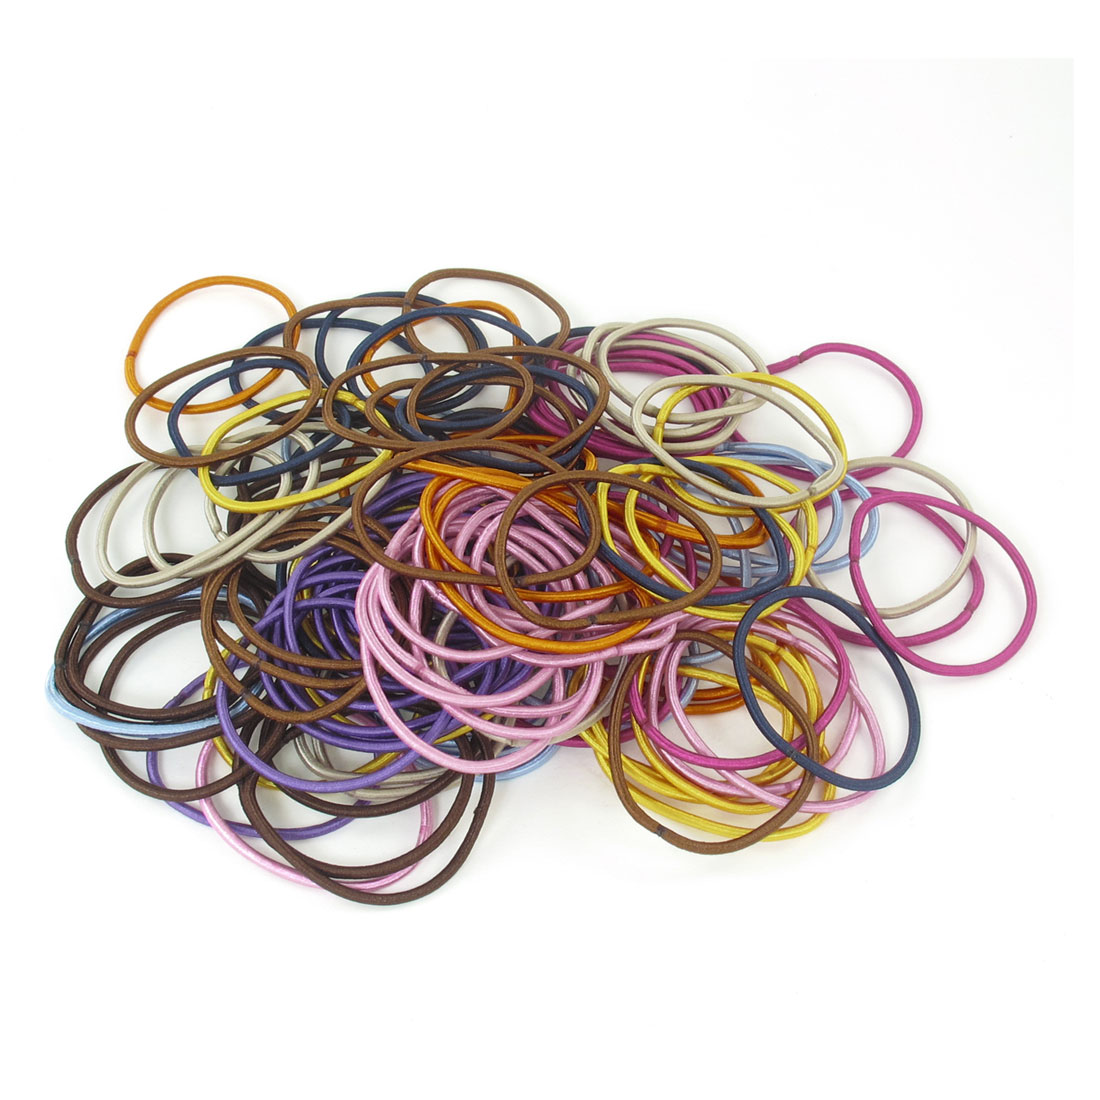 120 Pcs Lady Assorted Color Elastic Slim Hair Band Ponytail Holders Hair Tie